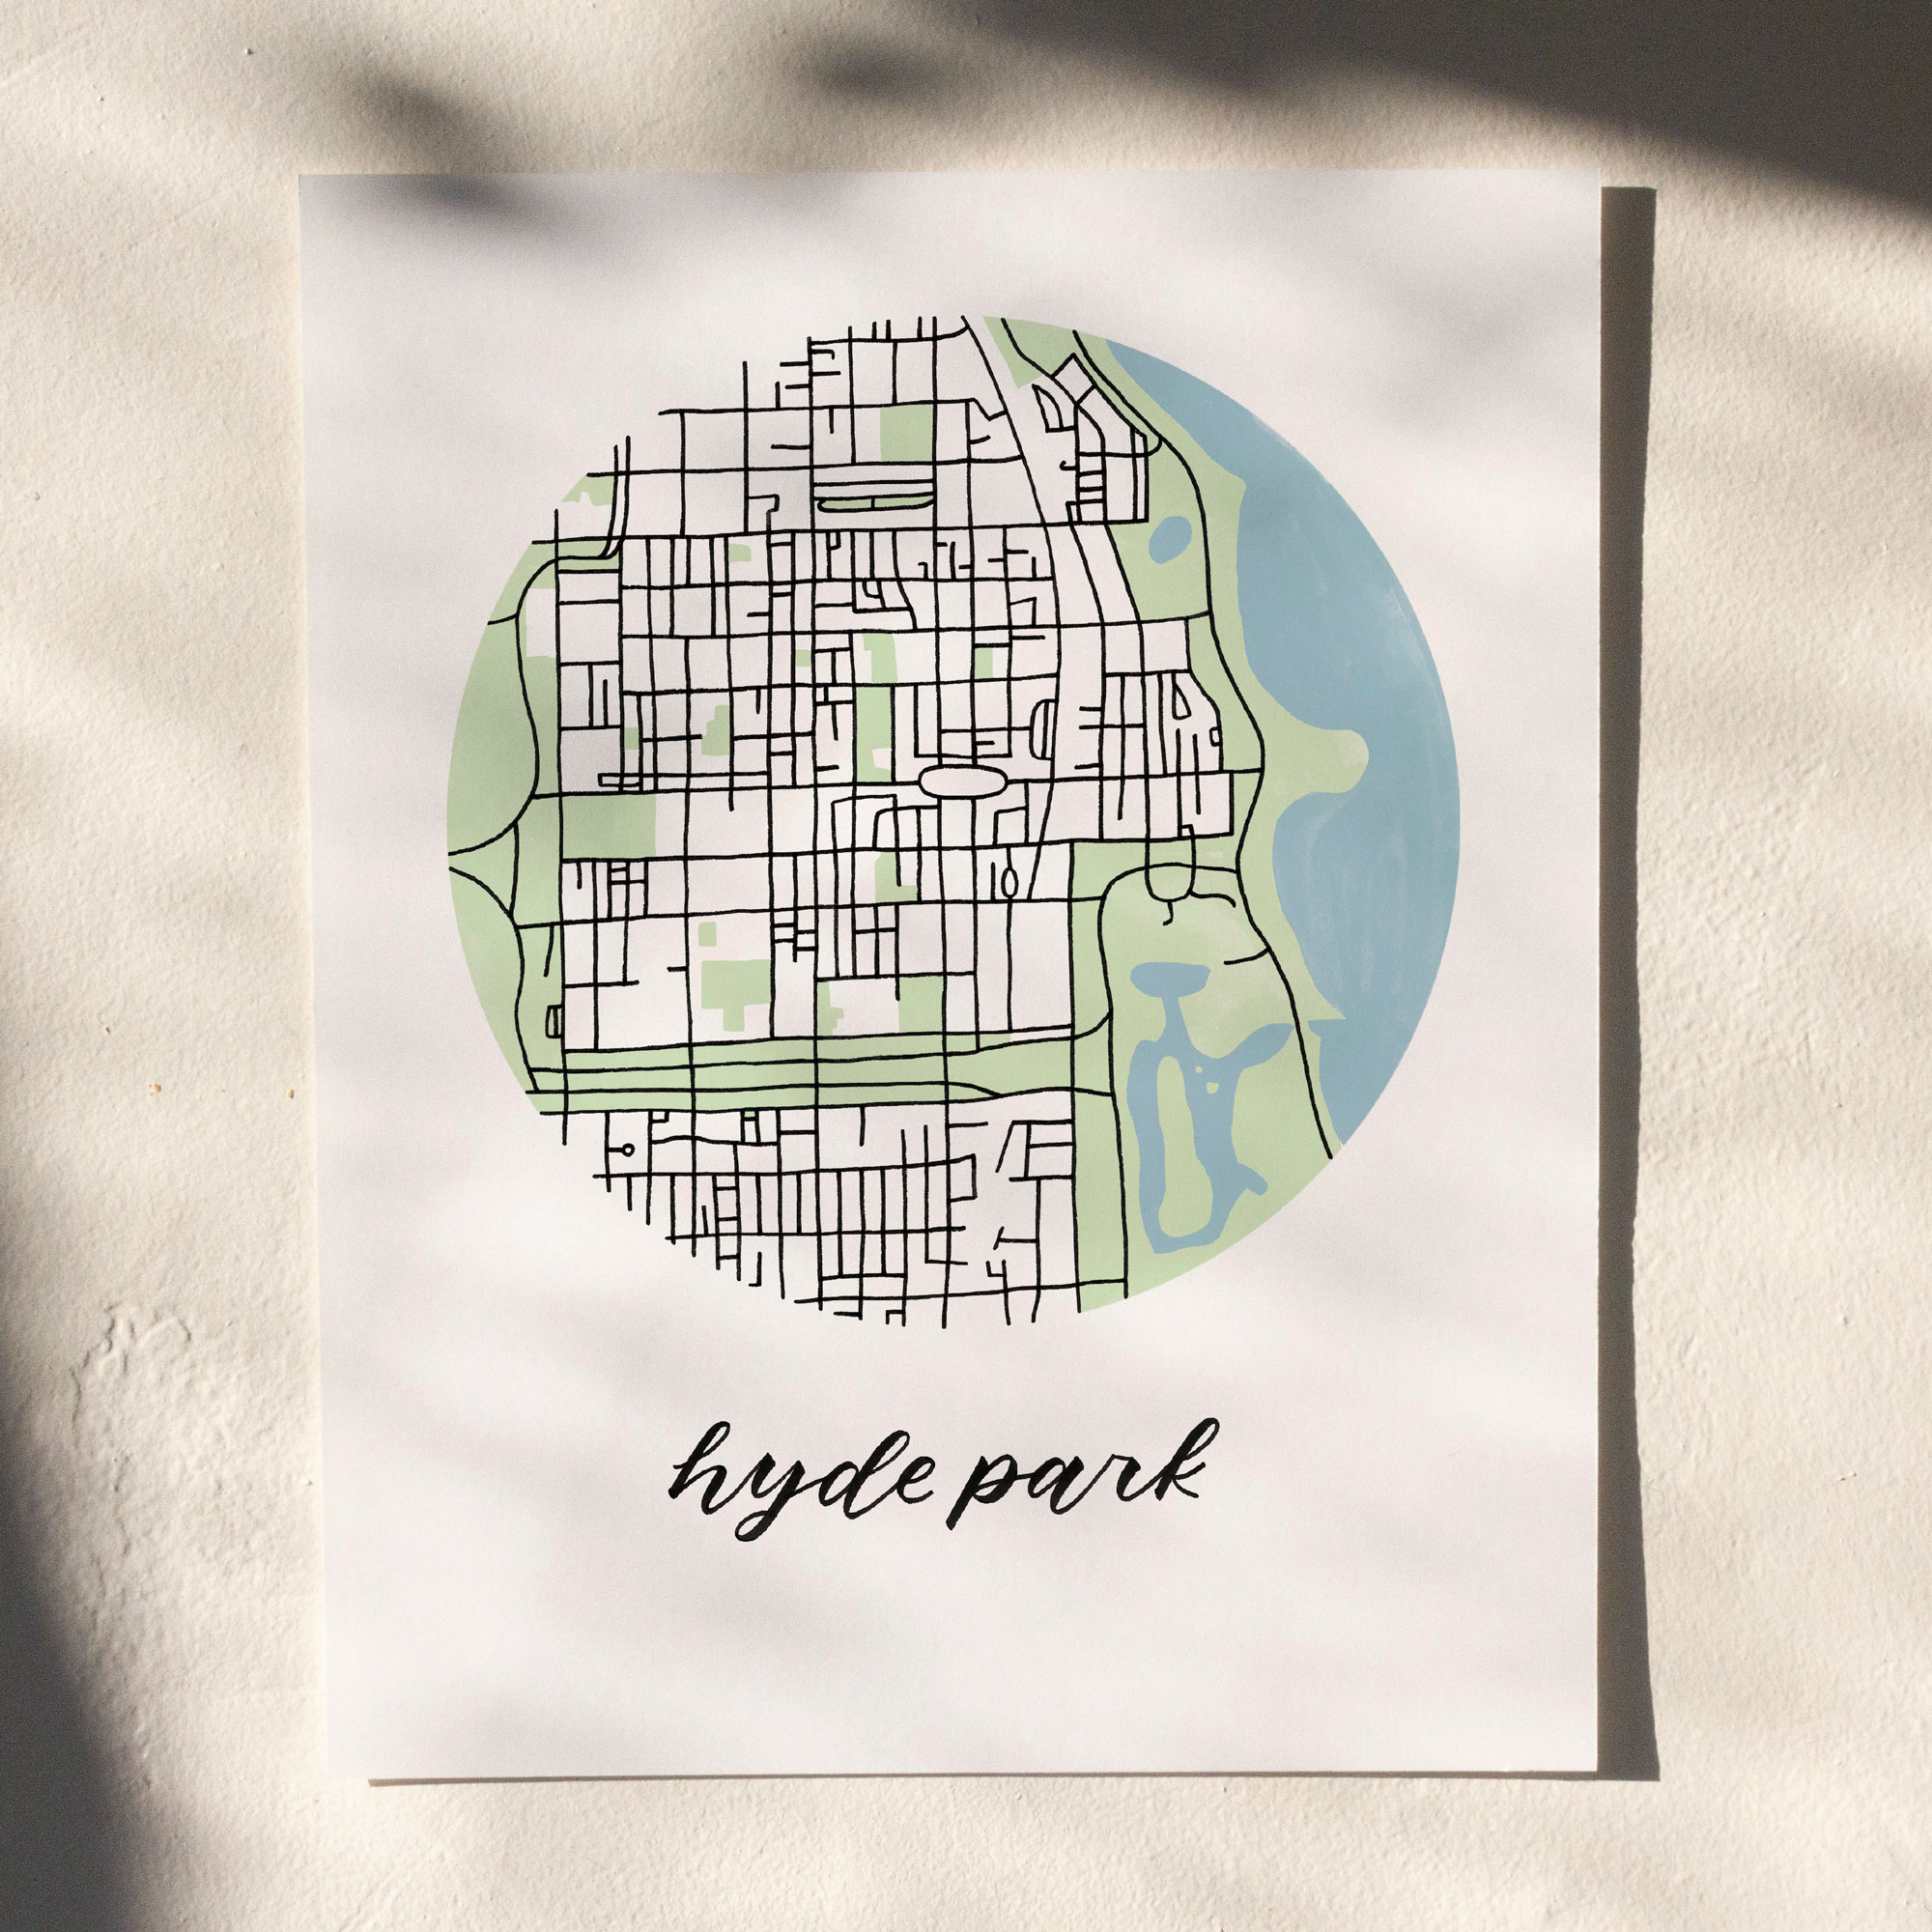 Hyde Park, Chicago Map Print hanging on white wall with leaf shadows across the image